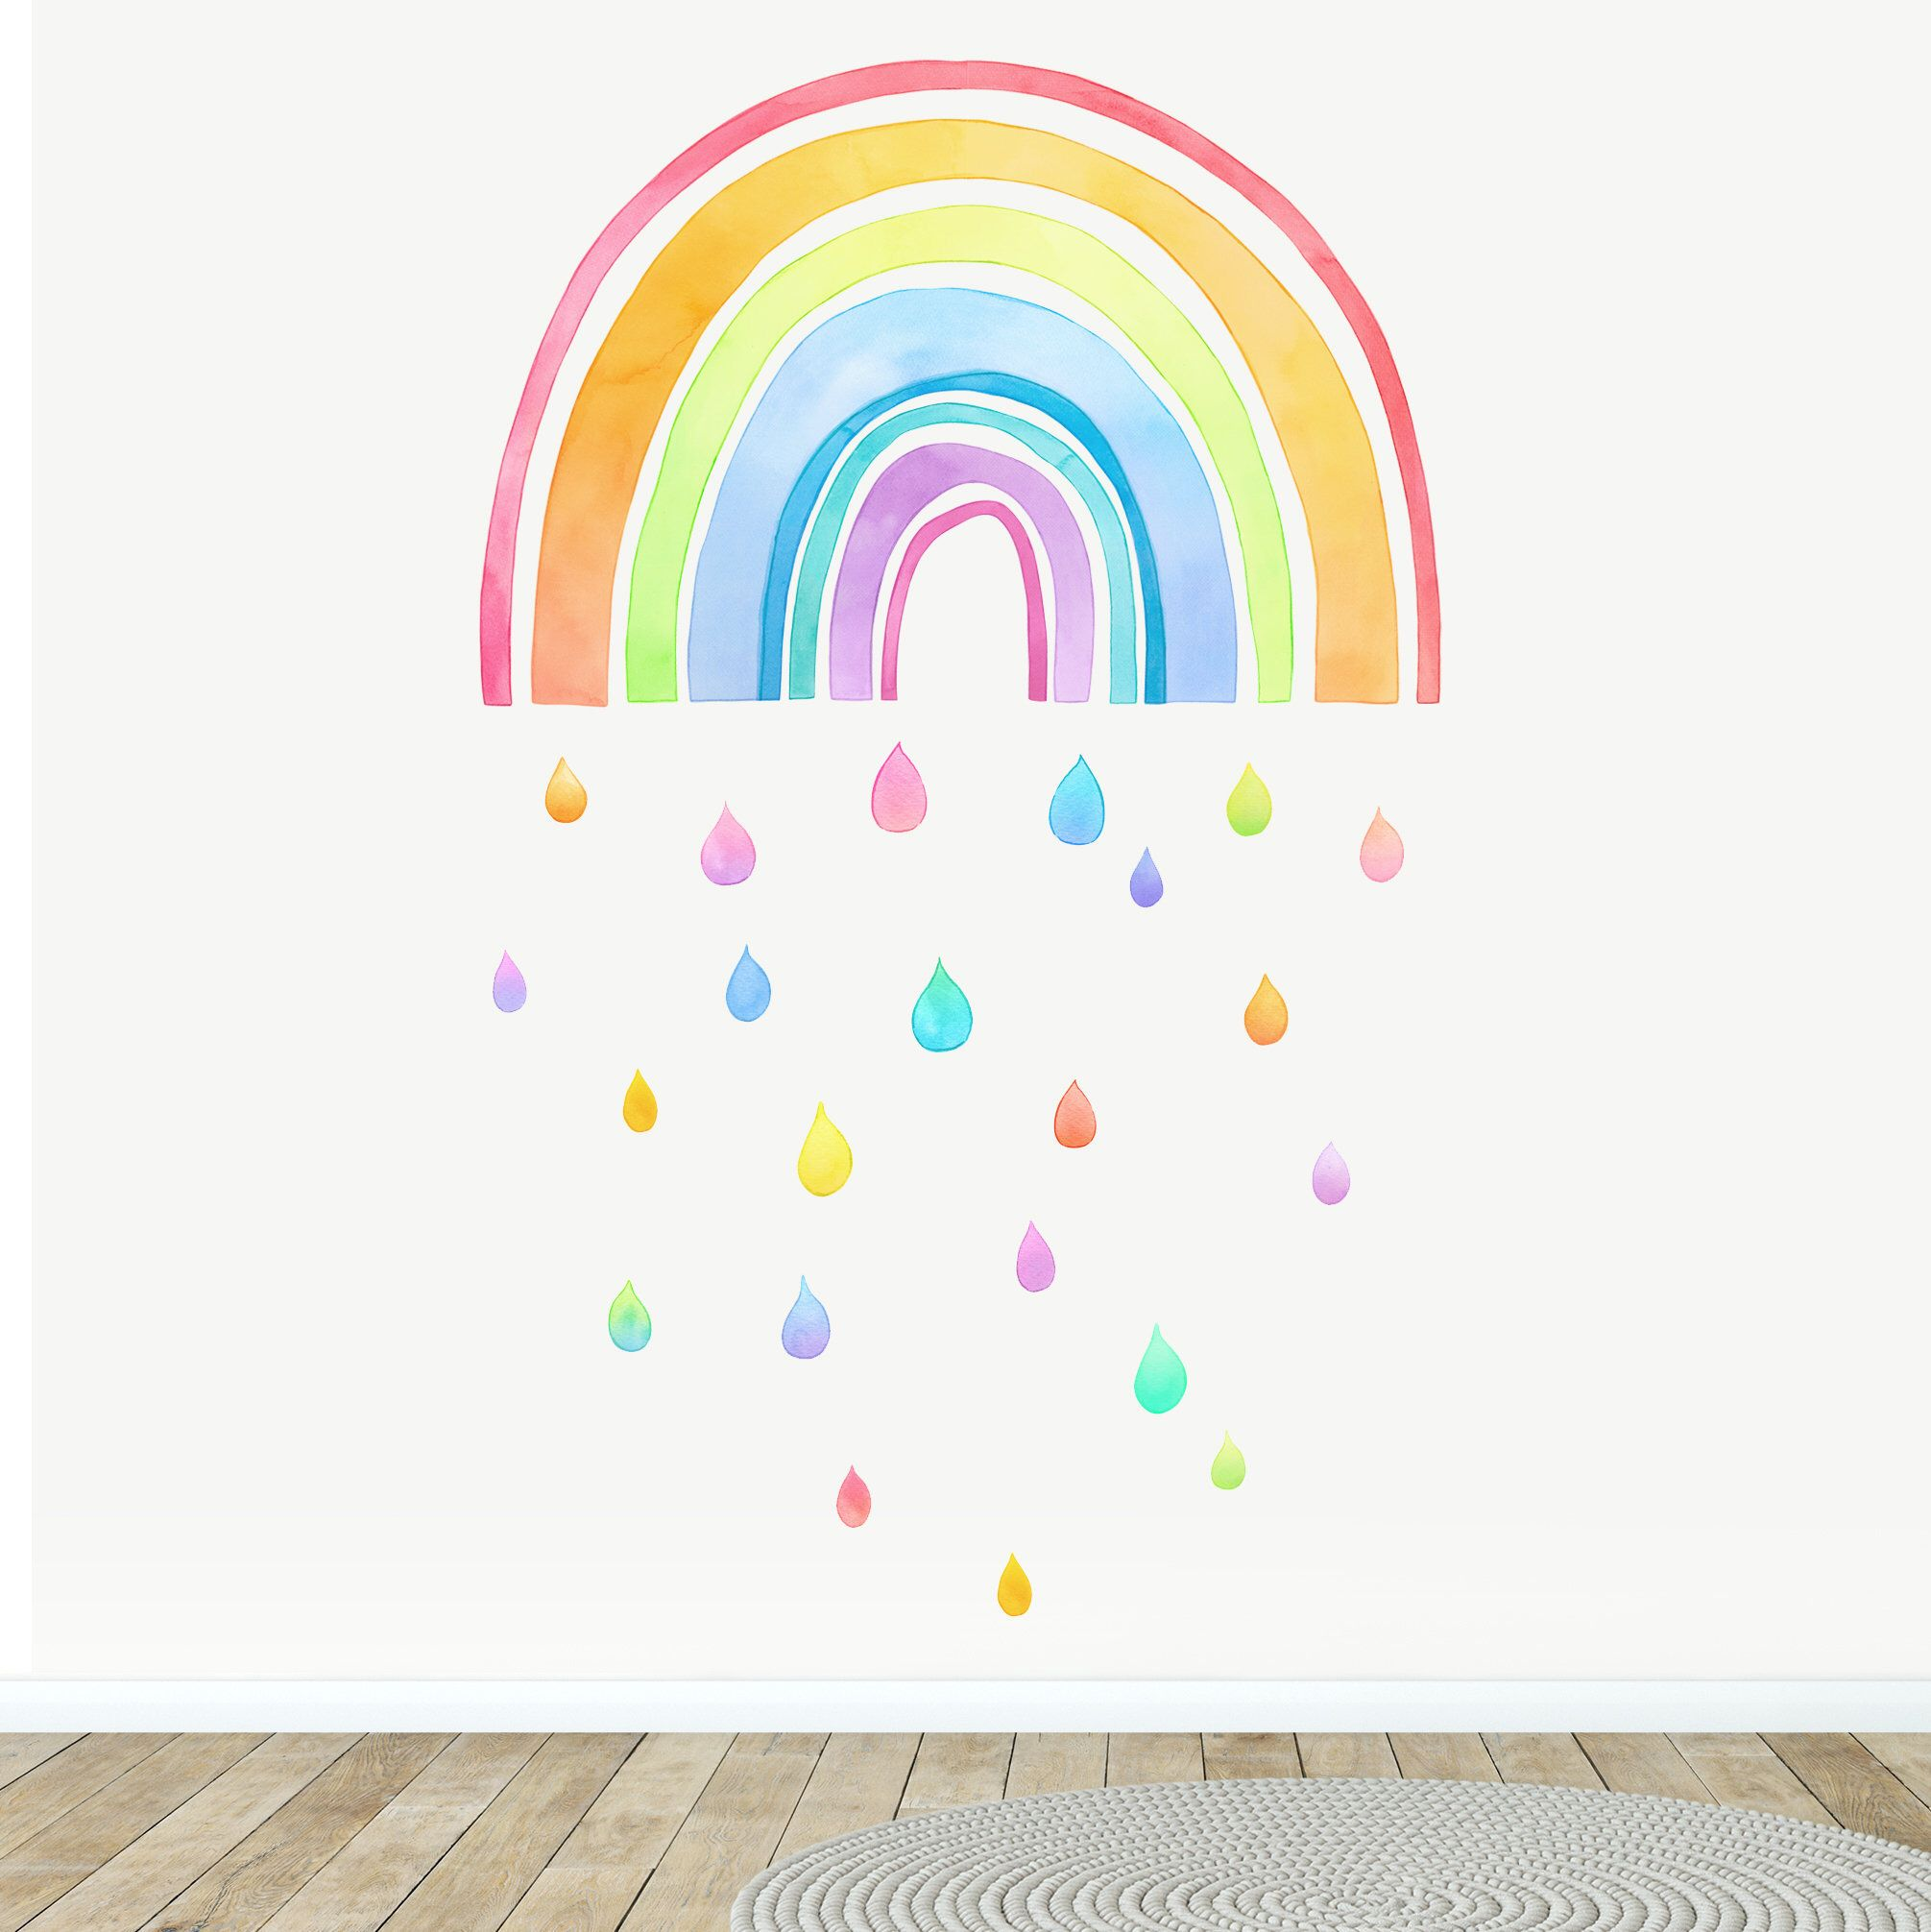 Fabric Wall Decal Large Rainbow Watercolour Kids Room Decor Etsy Fabric Wall Decals Colorful Wall Art Watercolor Kids Room